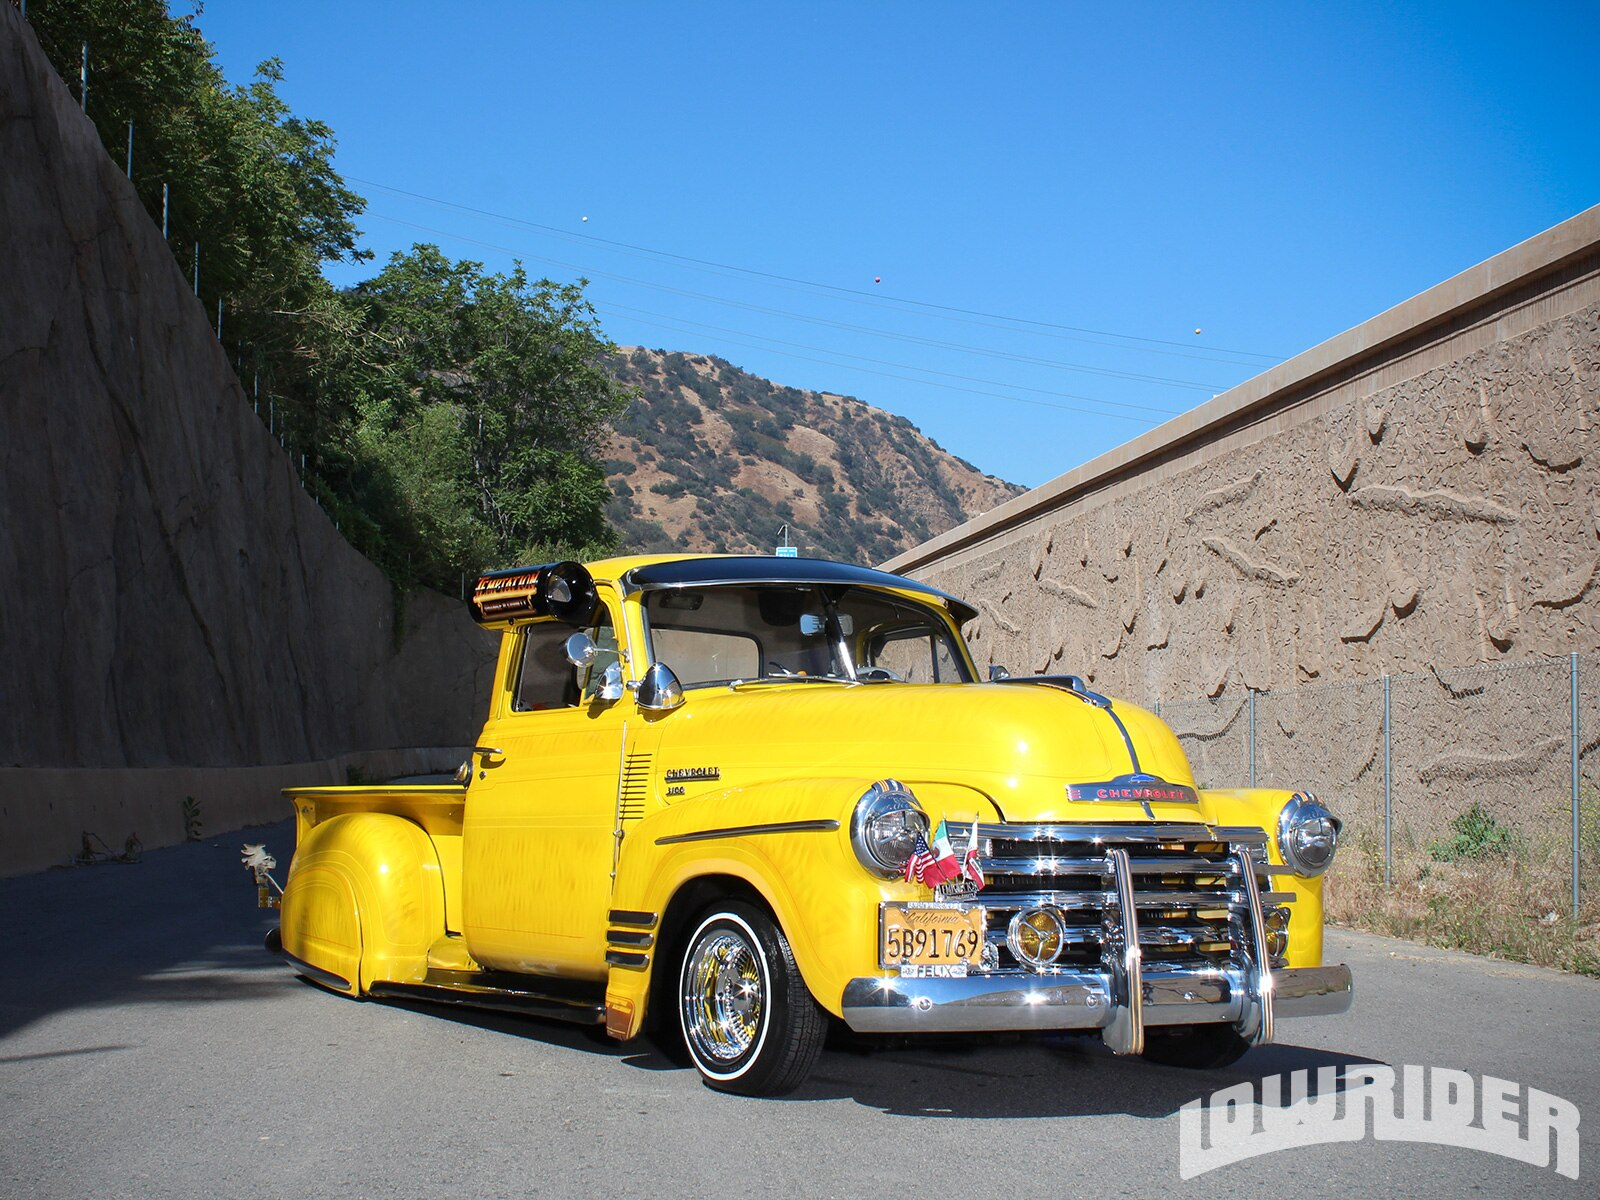 1951-chevrolet-truck-front-right-side-view2